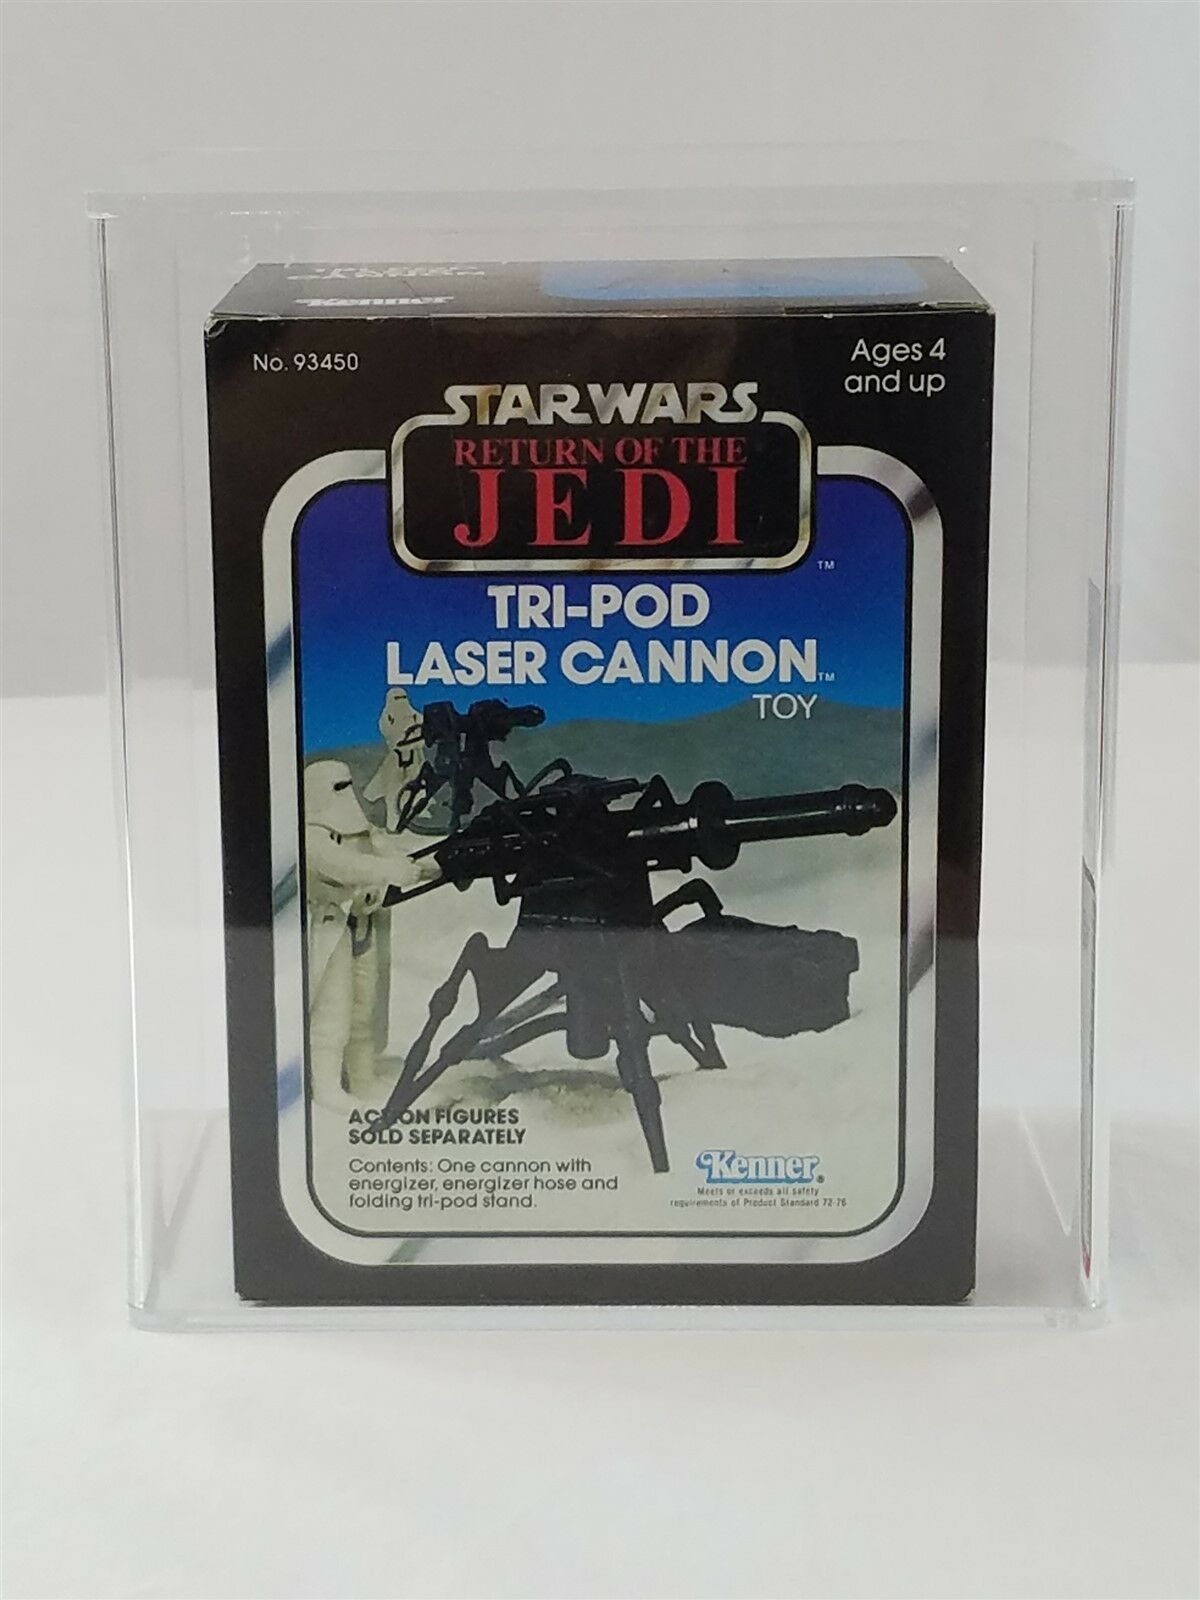 STAR WARS redJ TRI-POD LASER CANNON AFA 80 NM 15093510